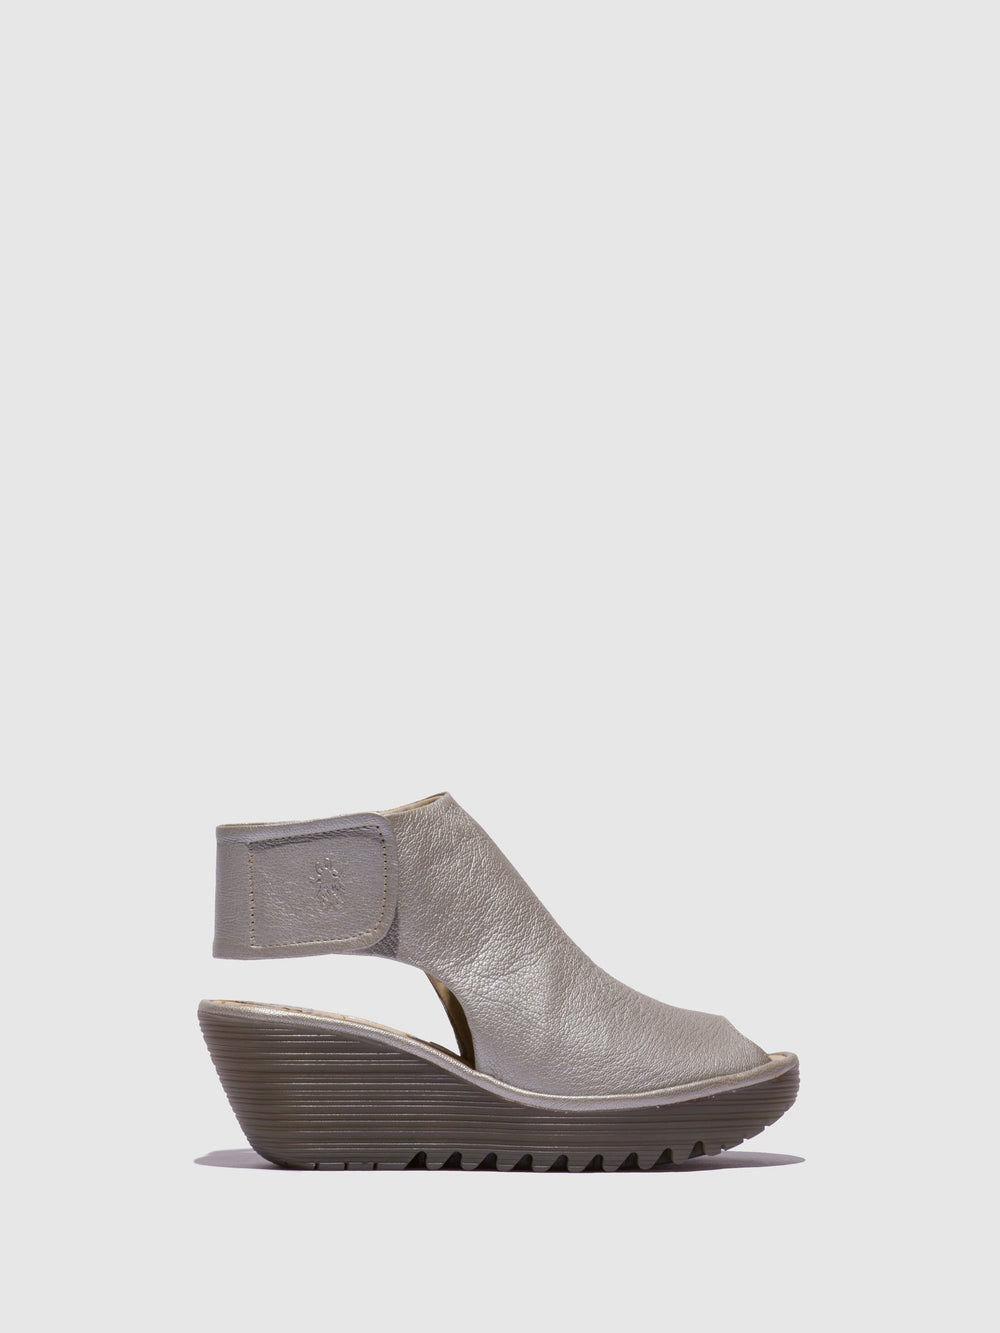 Ankle Strap Sandals YONE642FLY SILVER